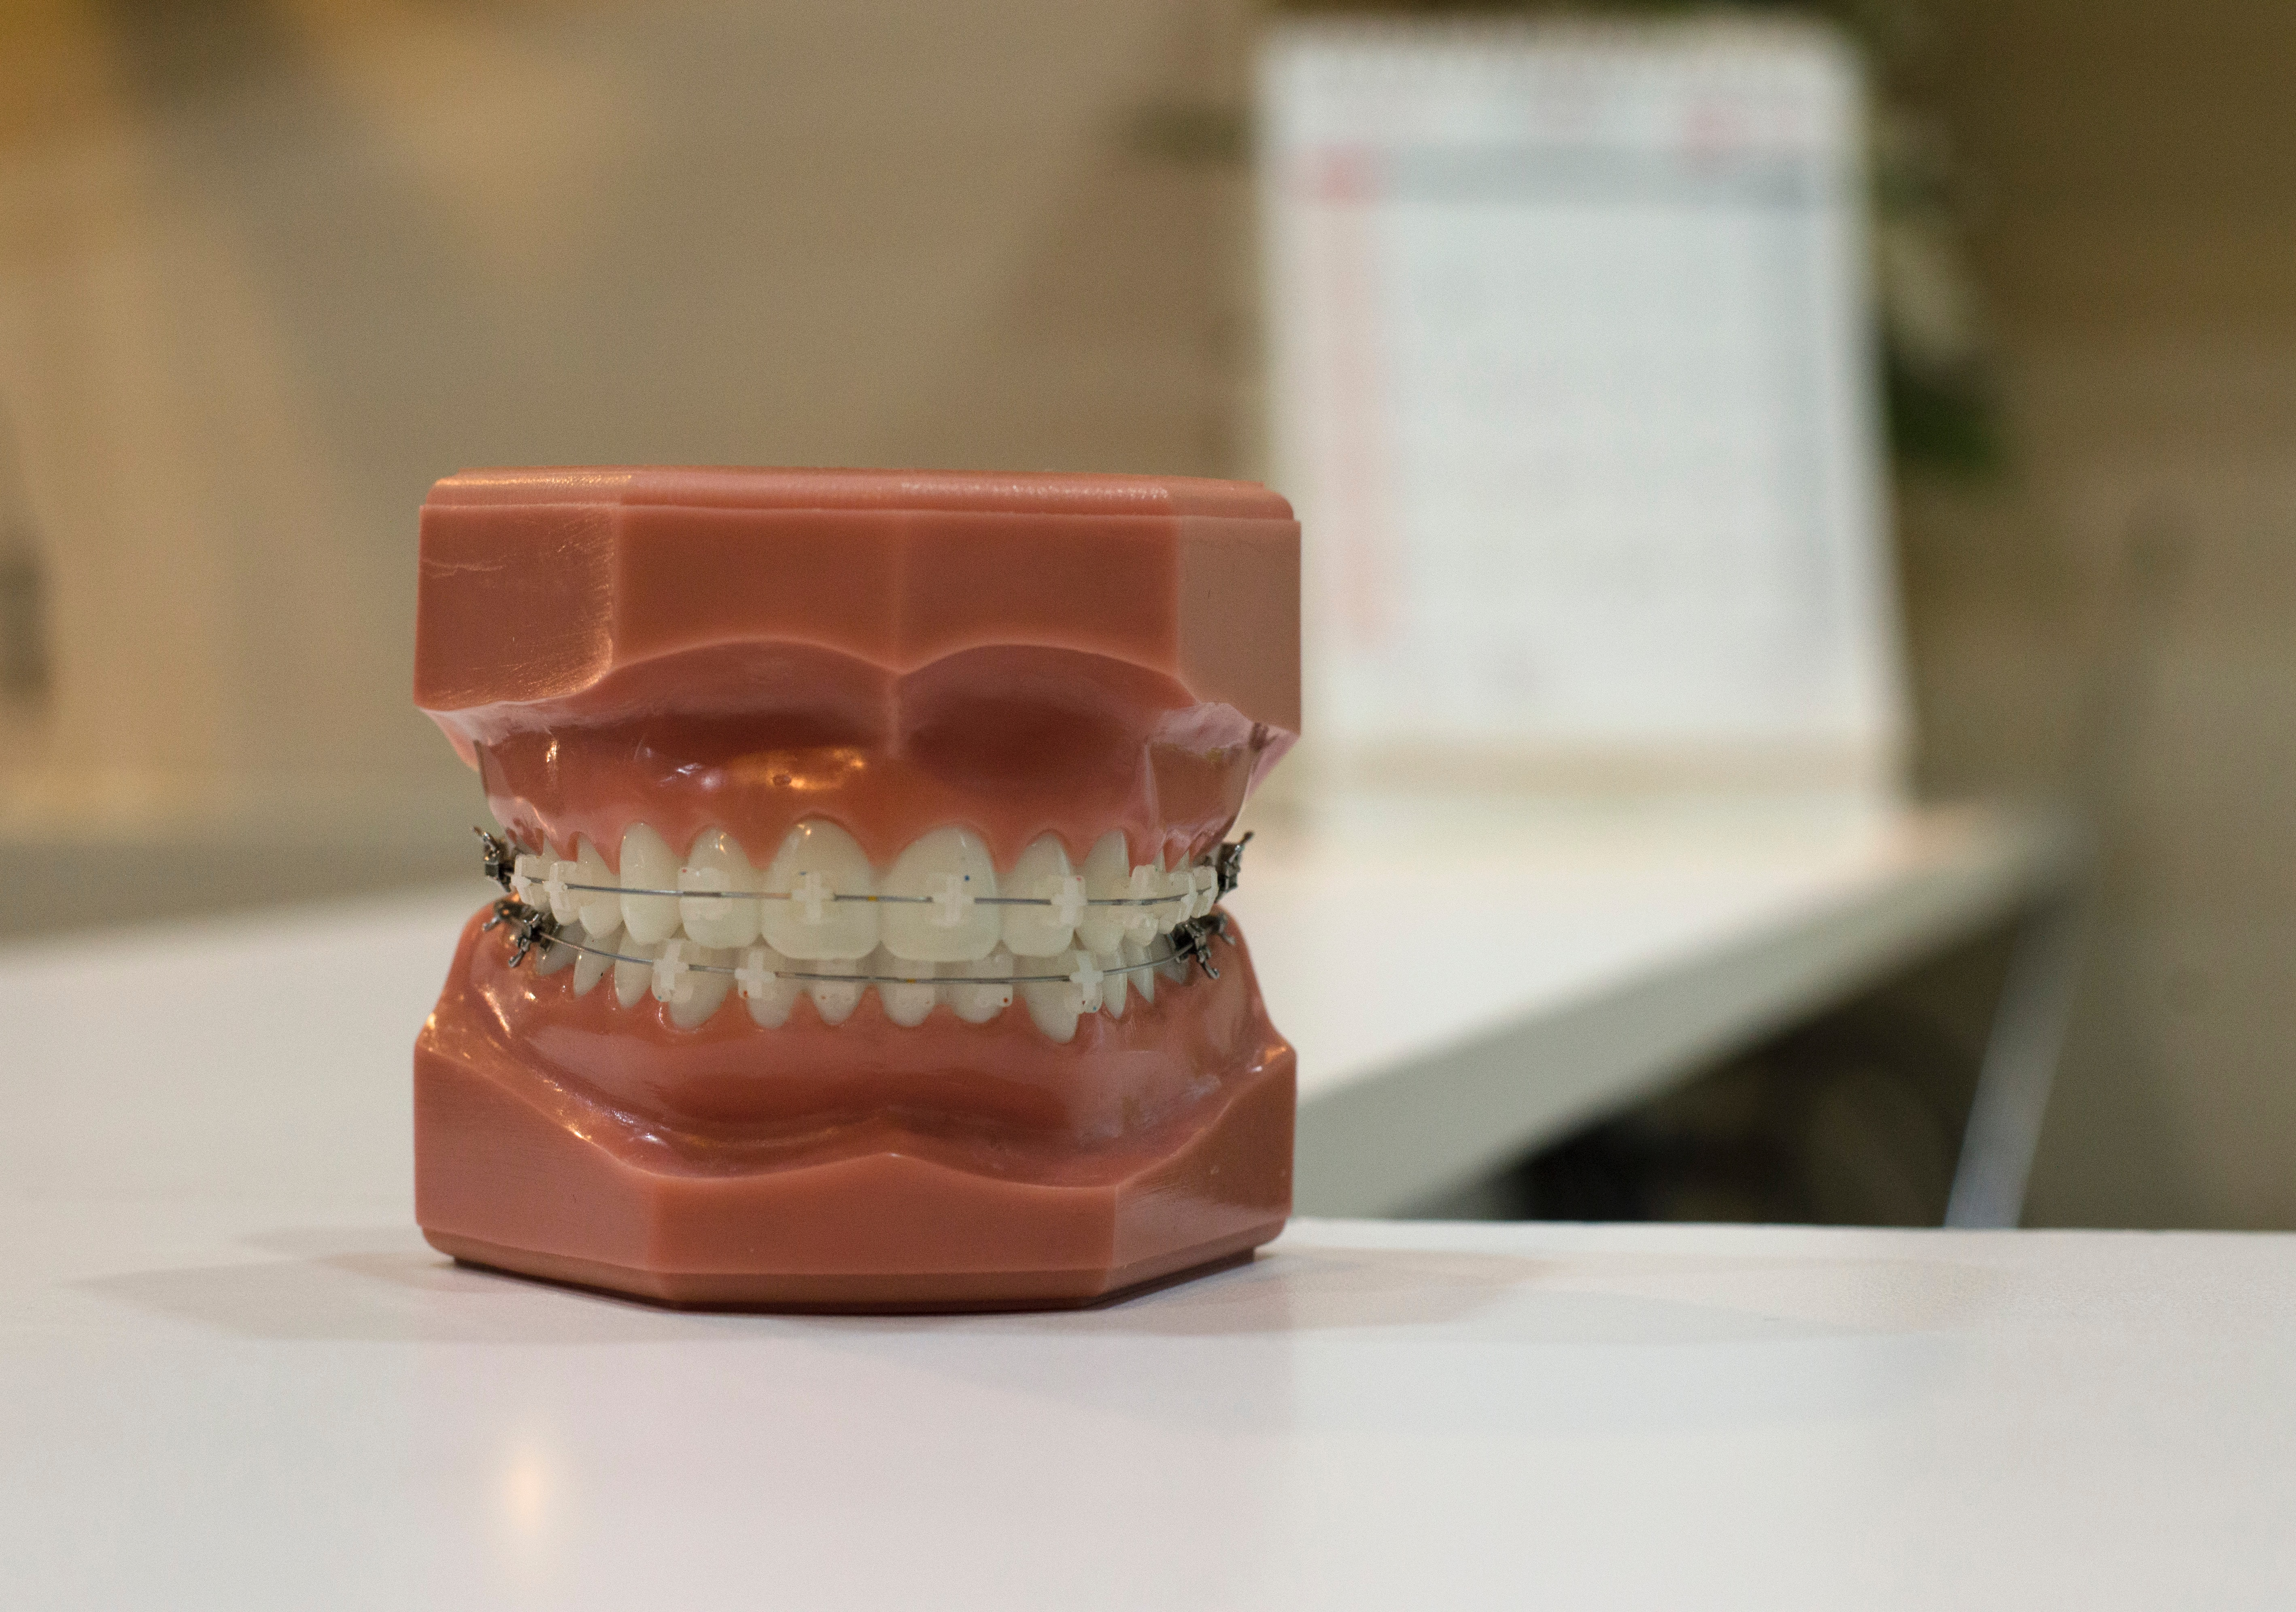 model of teeth with braces attached to it